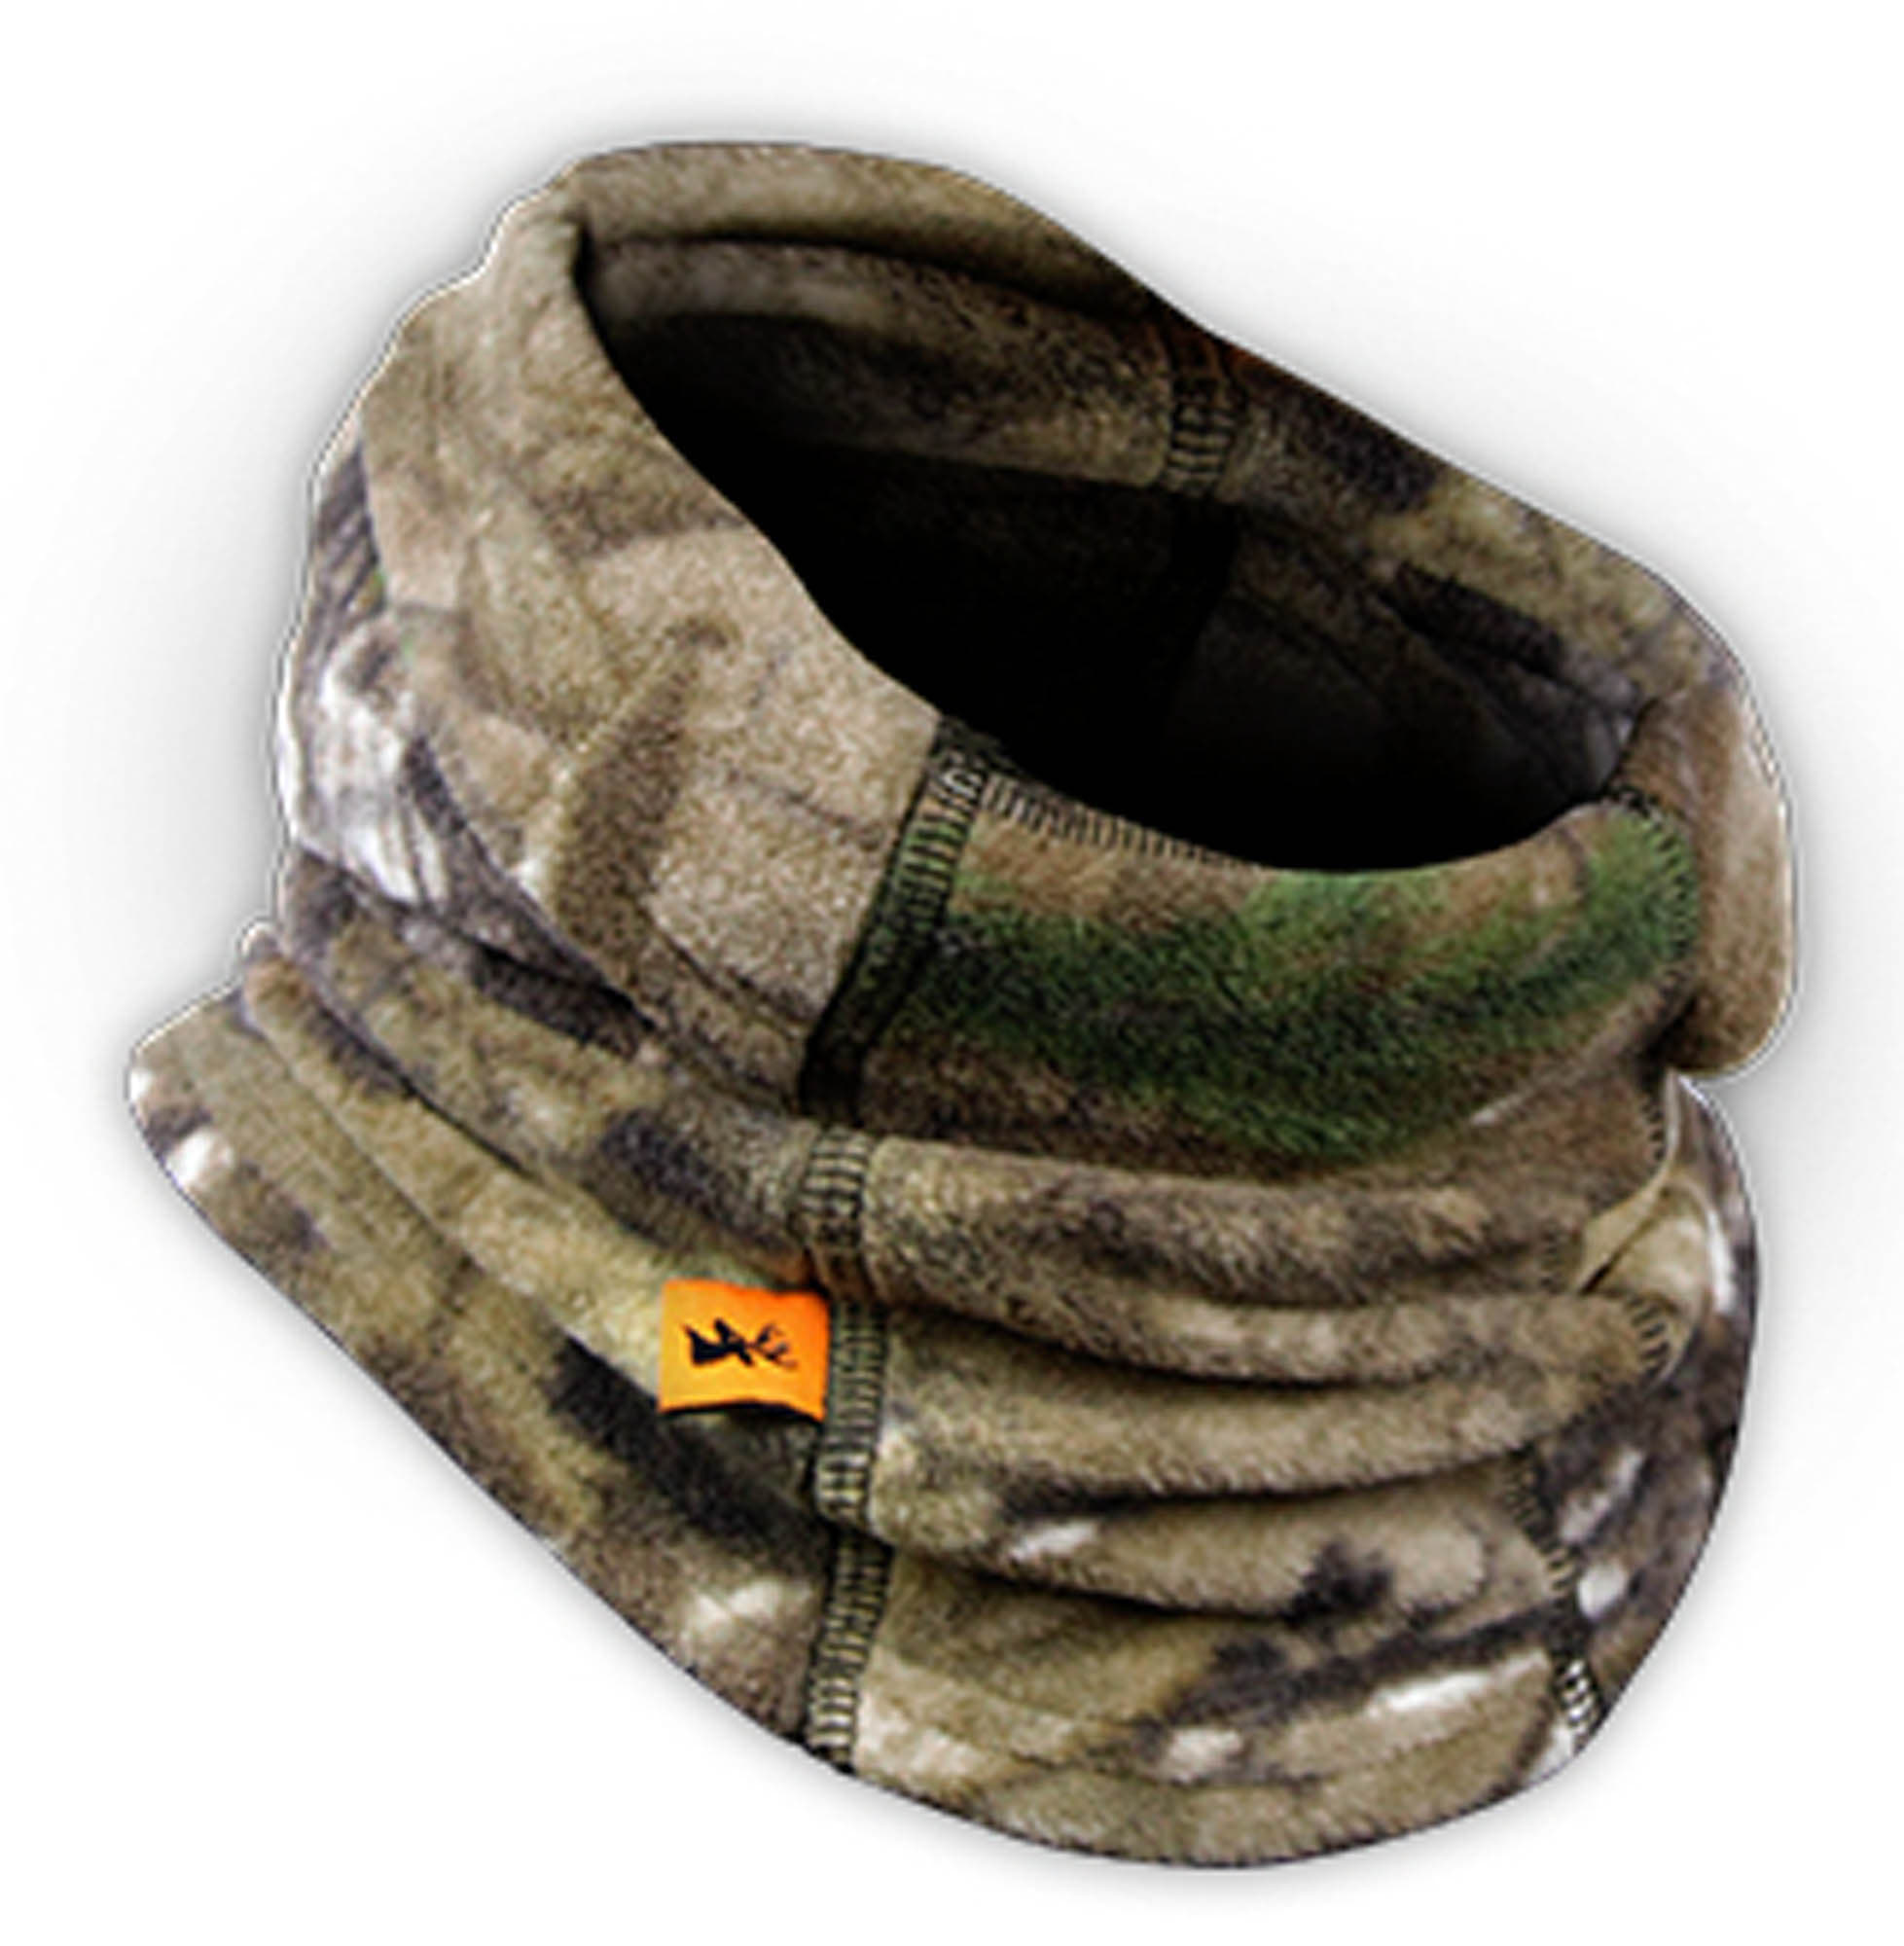 A50611-2-Cagoule polaire multi-usage camo - Spika - A50611